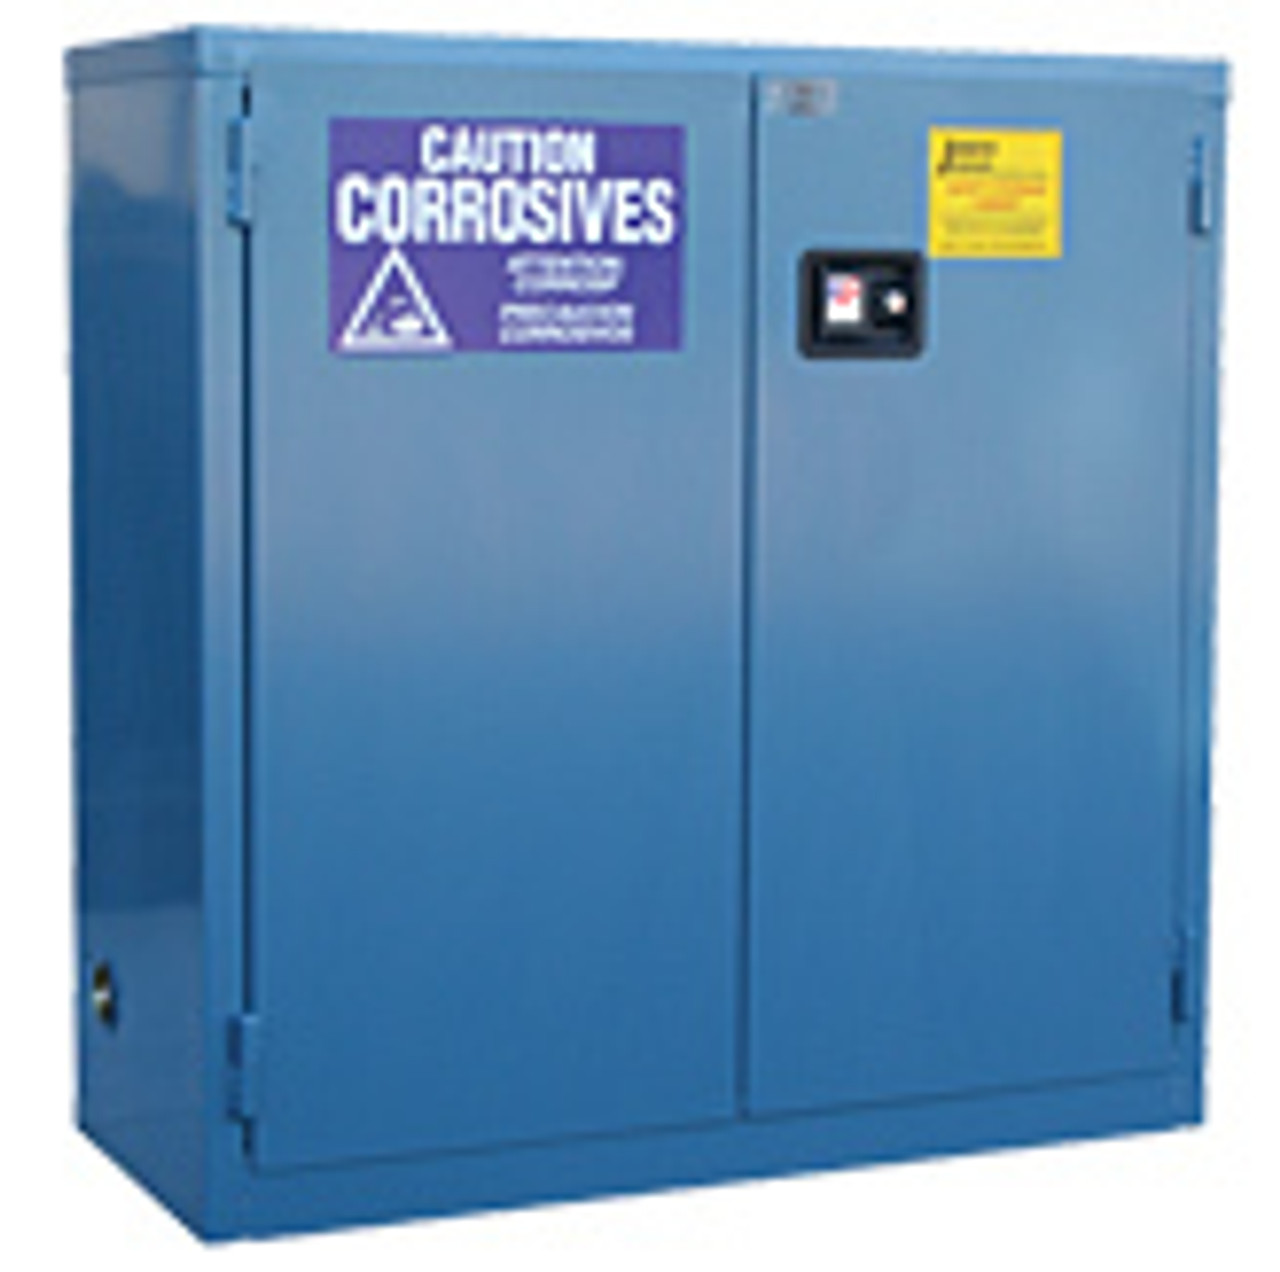 Acid/Corrosive Safety Cabinets